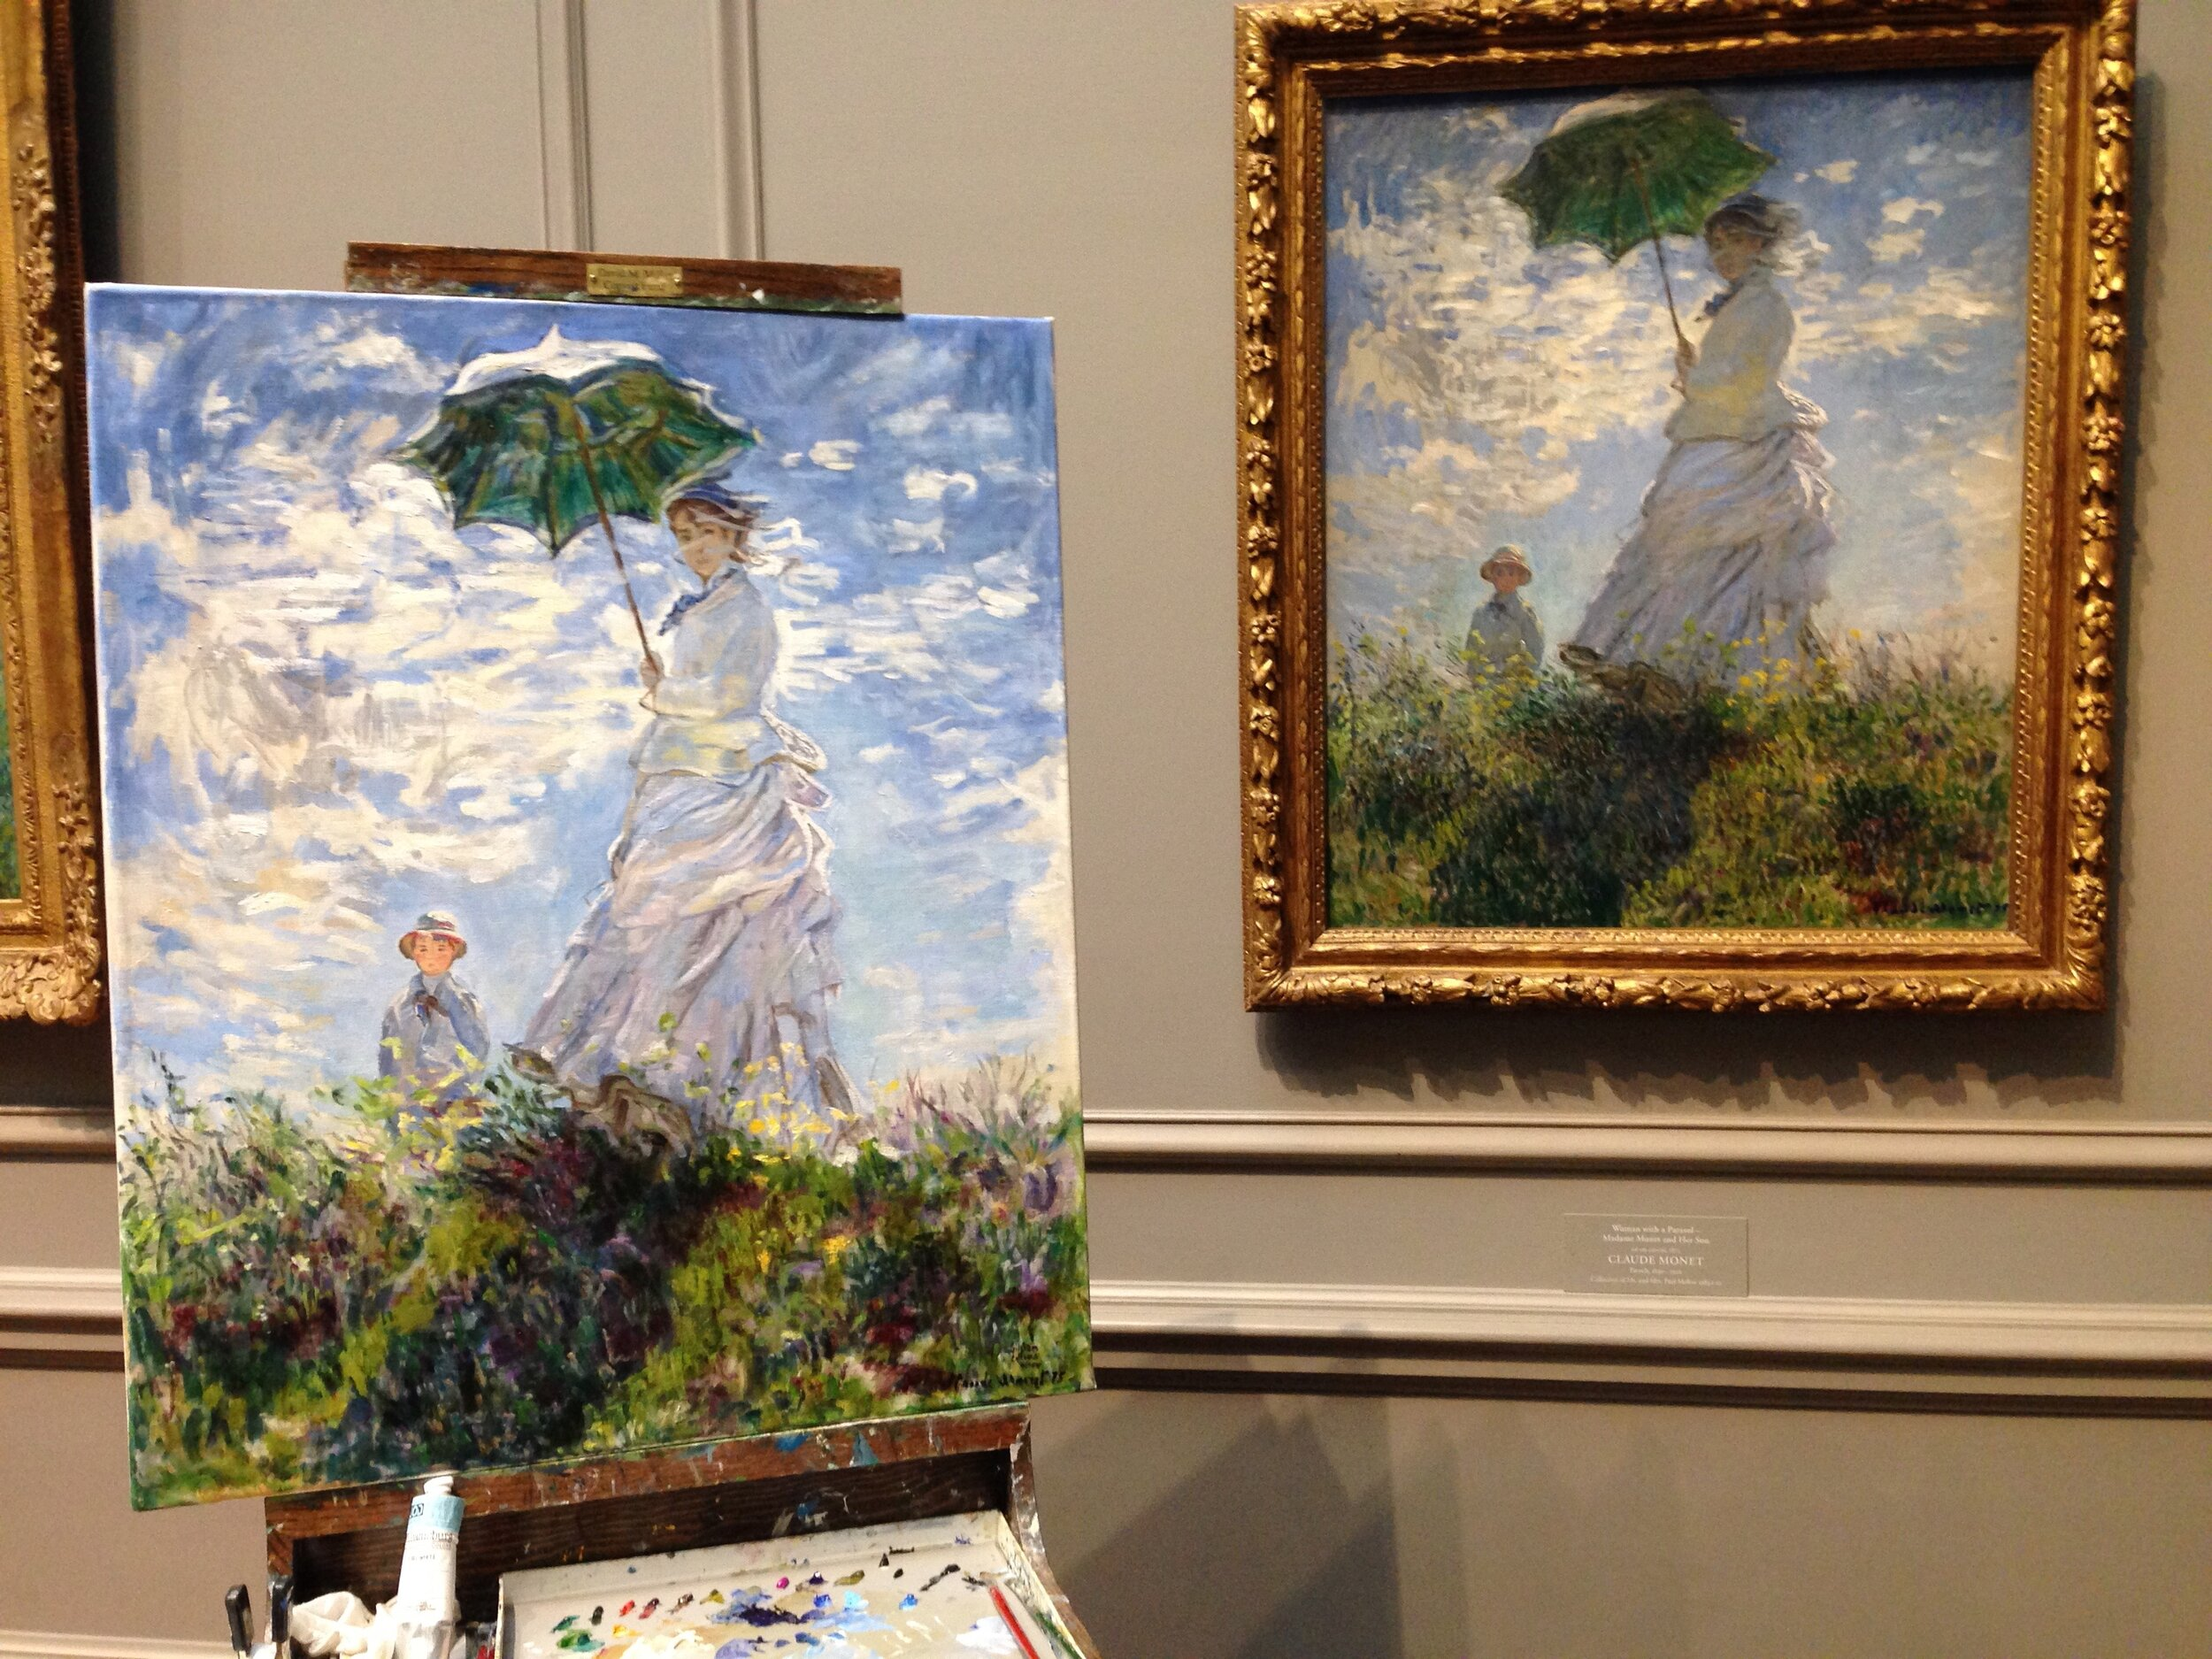 Copy of Monet's Woman with a Parasol